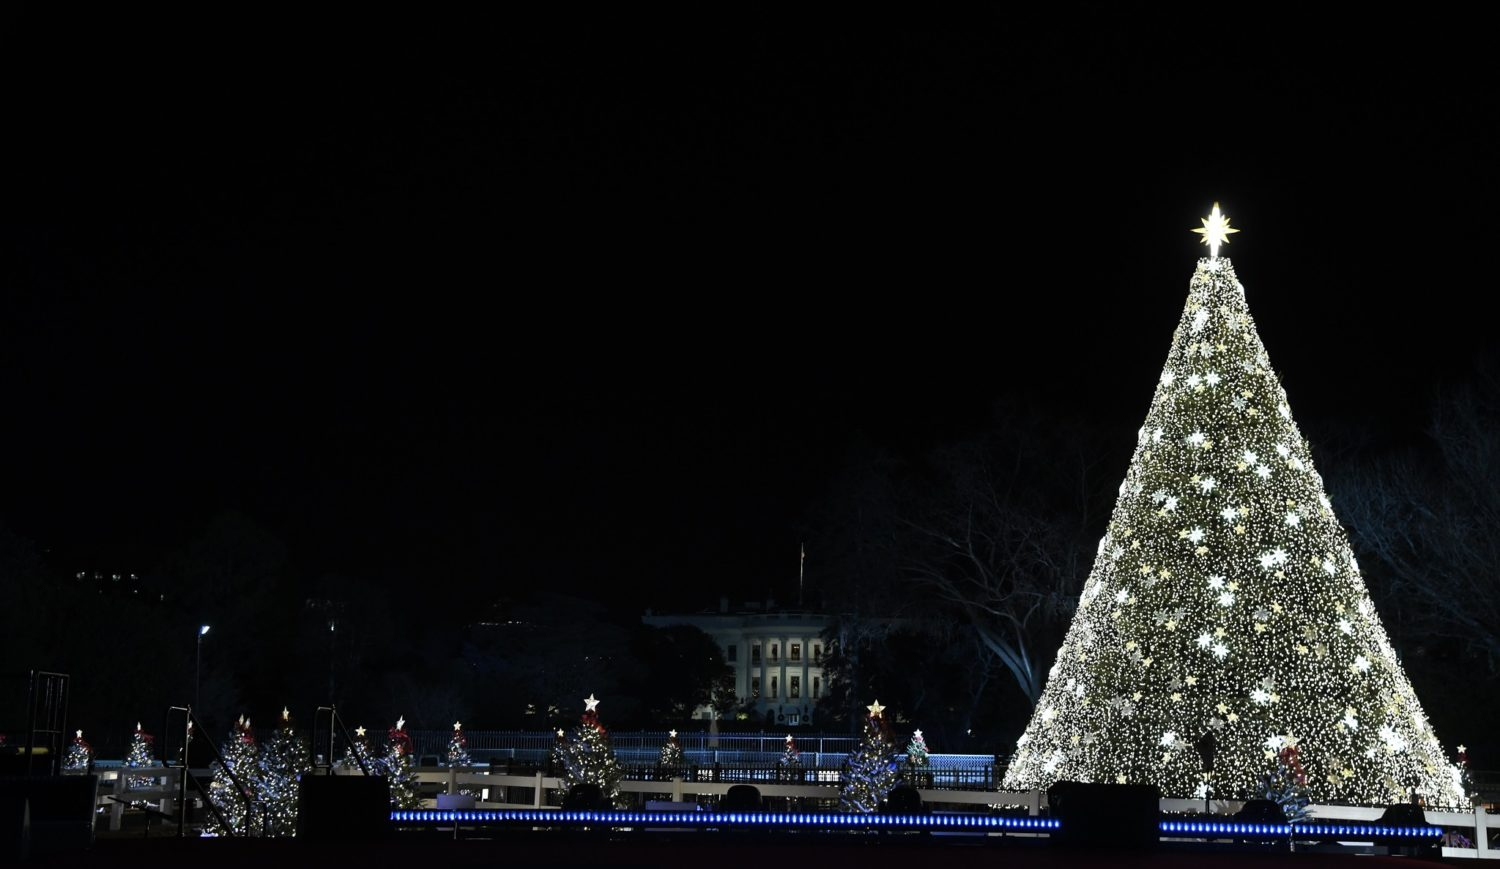 National Christmas Tree 2020 Journey To White House What To Know About ZooLights And The National Christmas Tree WAMU